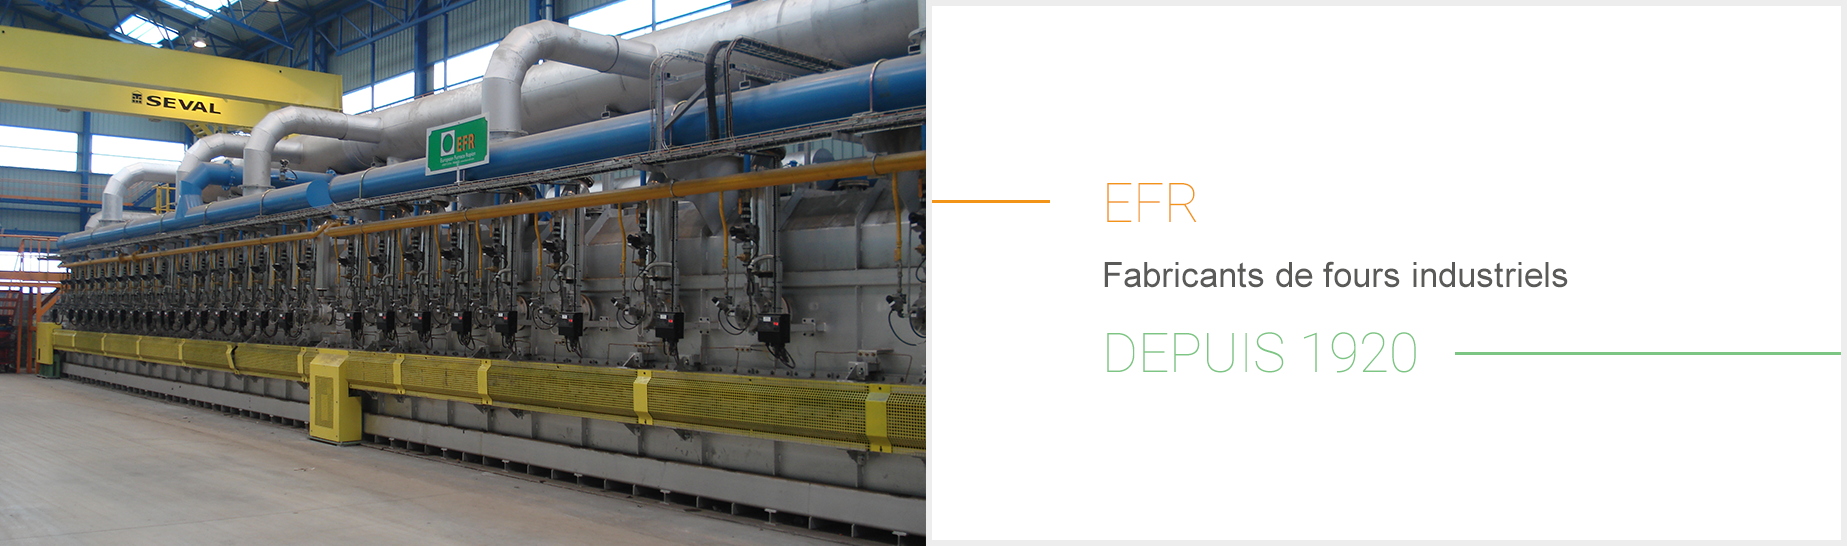 EFR Fabricants de fours industriels